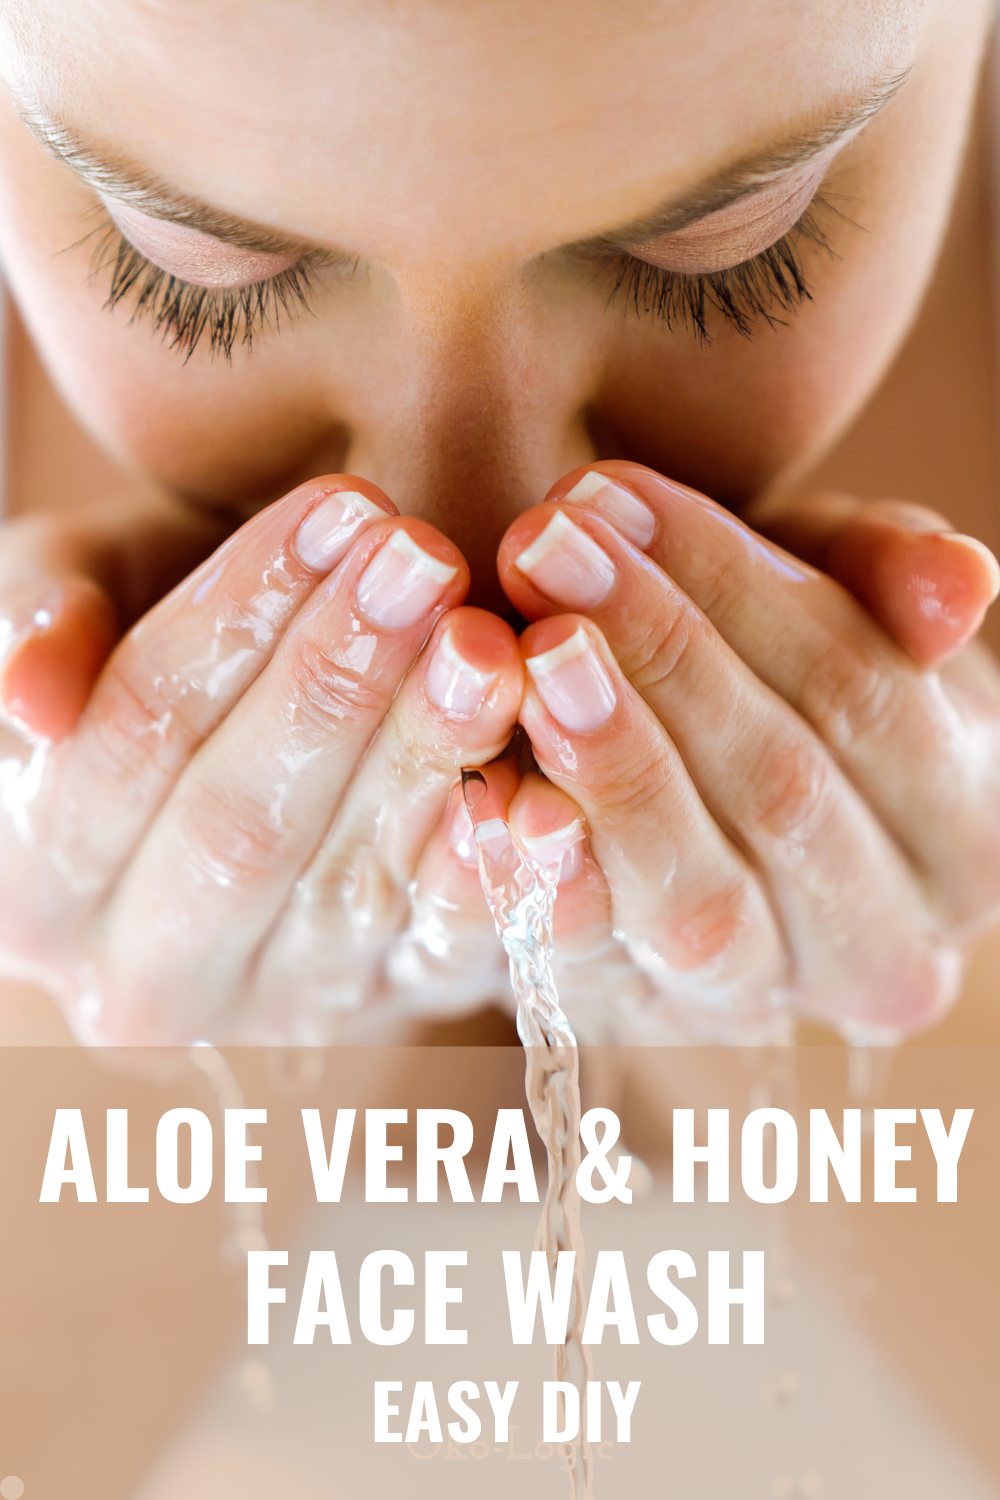 Easy Aloe Vera Face Wash With Raw Honey and Hemp Seed Oil